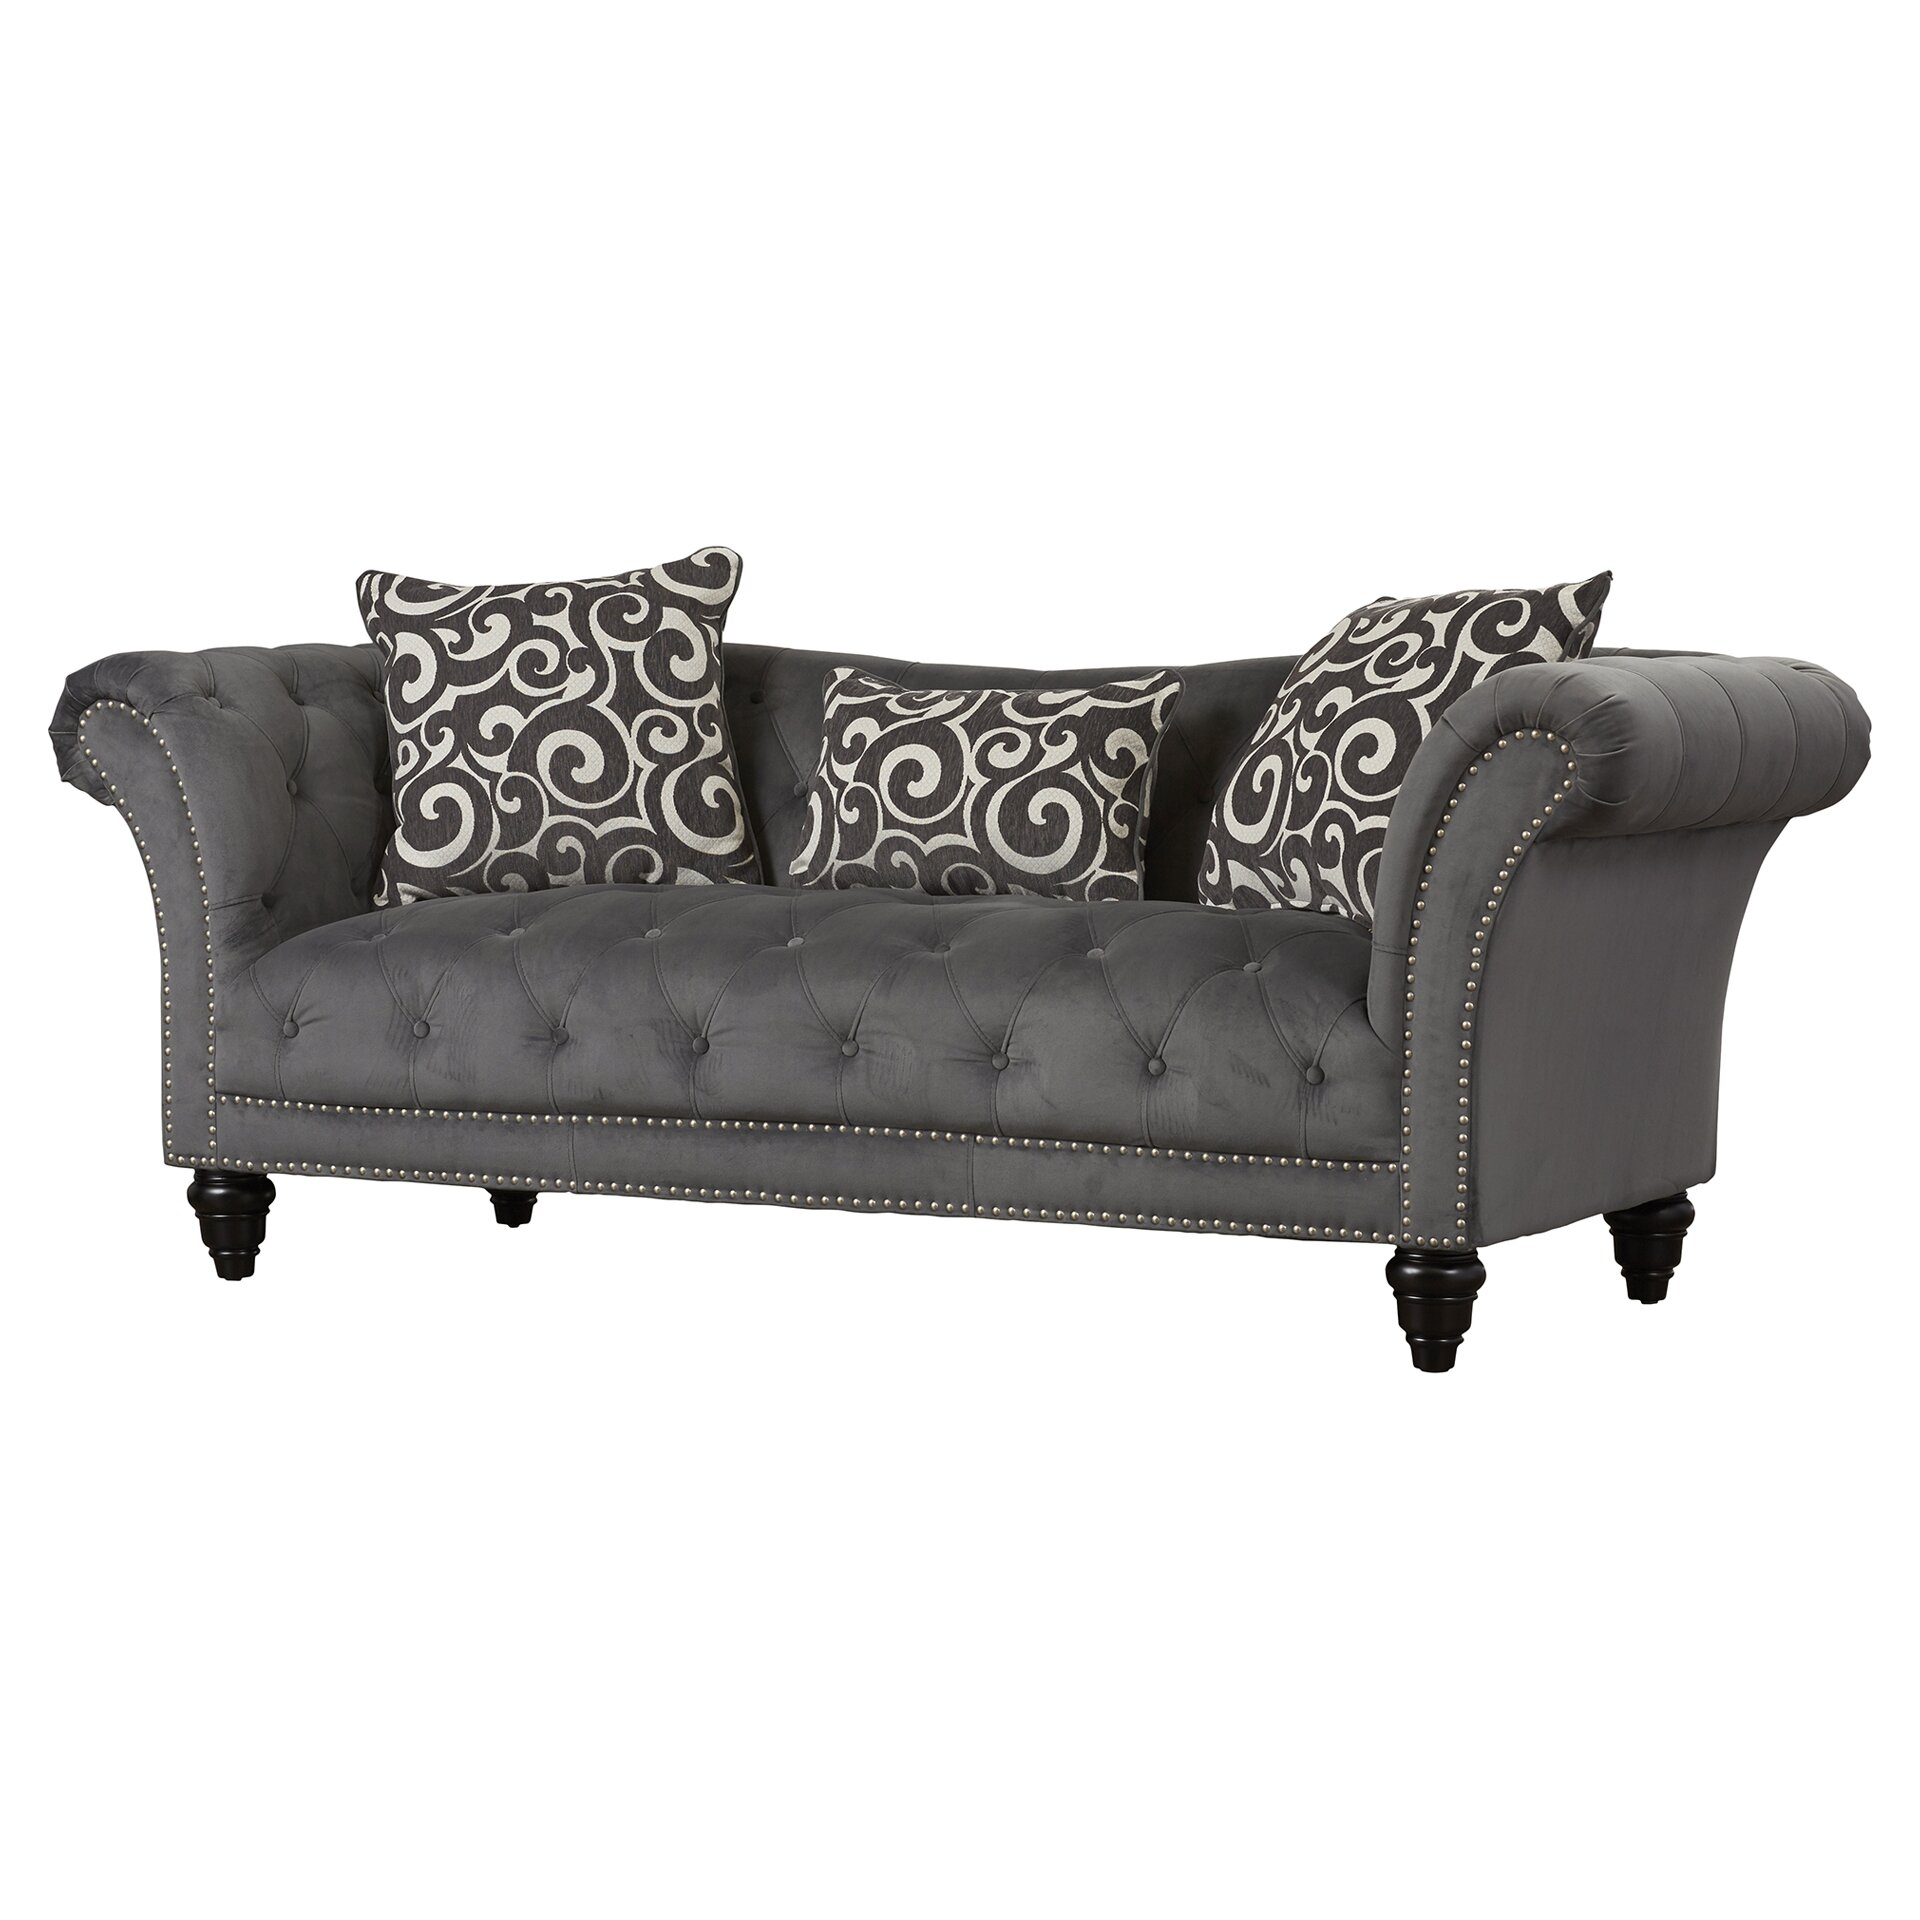 Excellent Cagney Sofa Images Reverse Search Download Free Architecture Designs Scobabritishbridgeorg